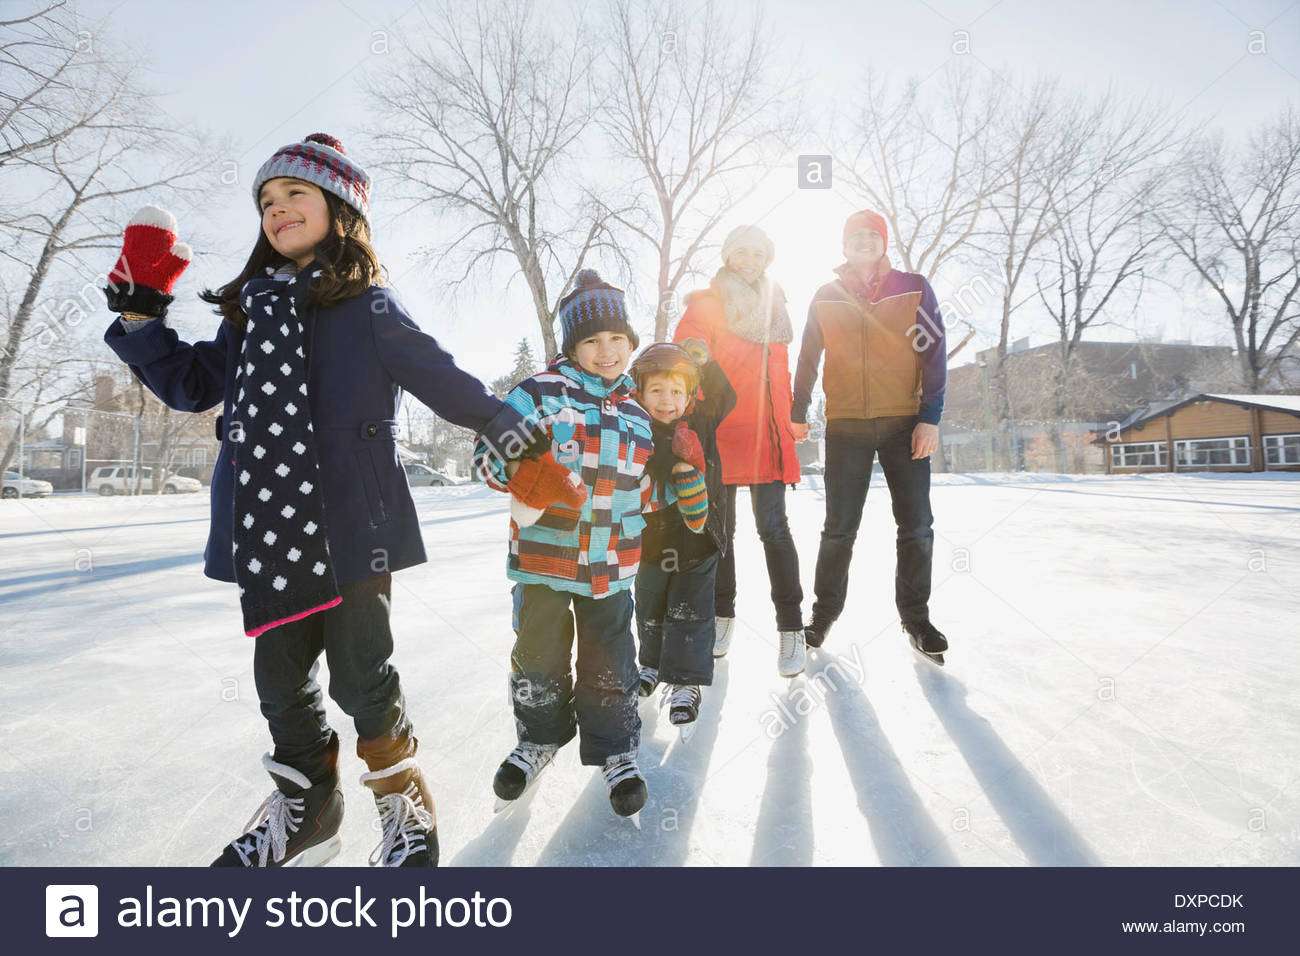 Family ice-skating on rink - Stock Image